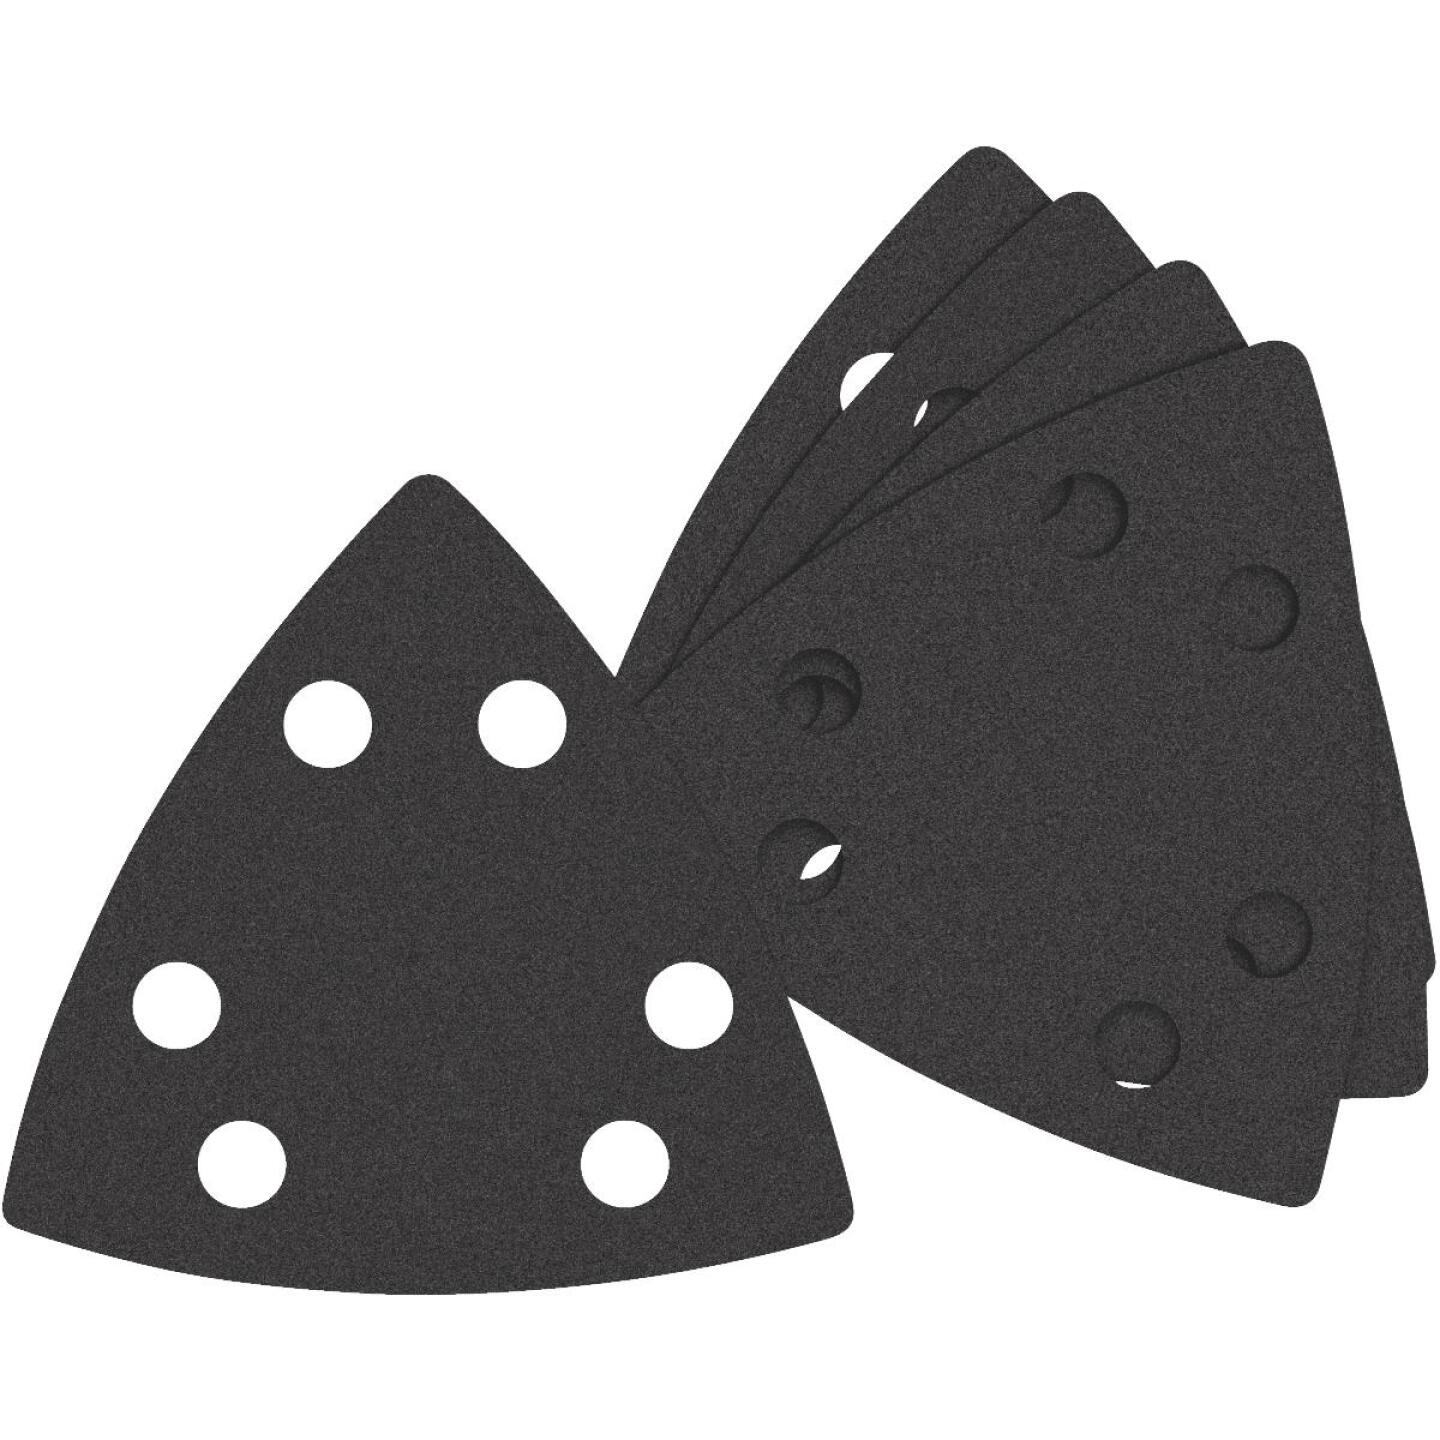 Imperial Blades One Fit 60 Grit Oscillating Sandpaper (5-Pack) Image 1